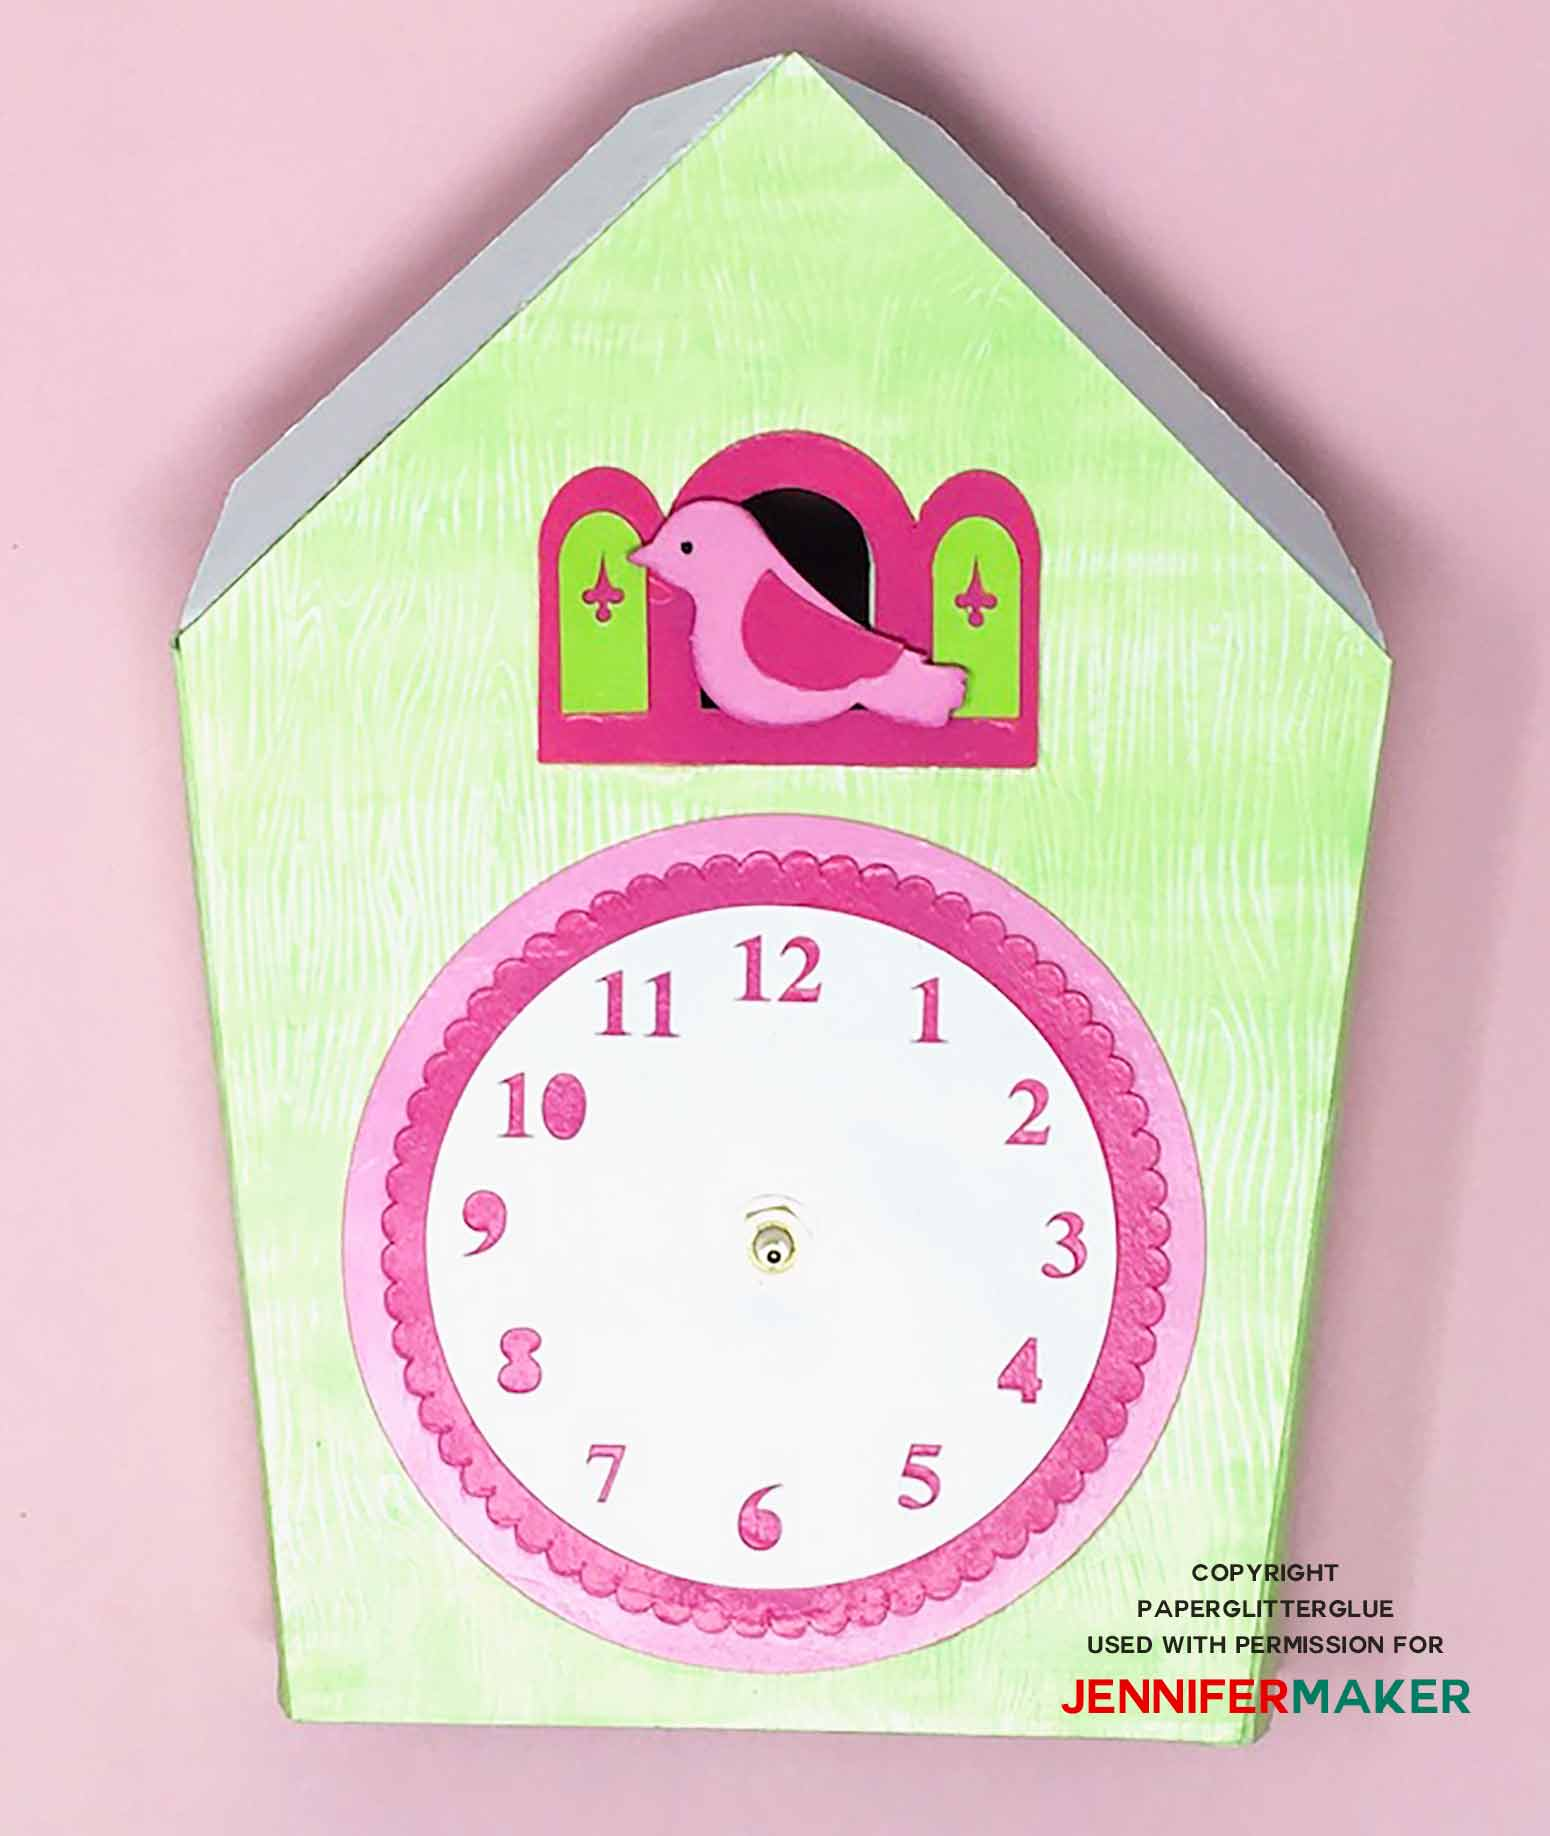 Glue decorative pieces to front of clock